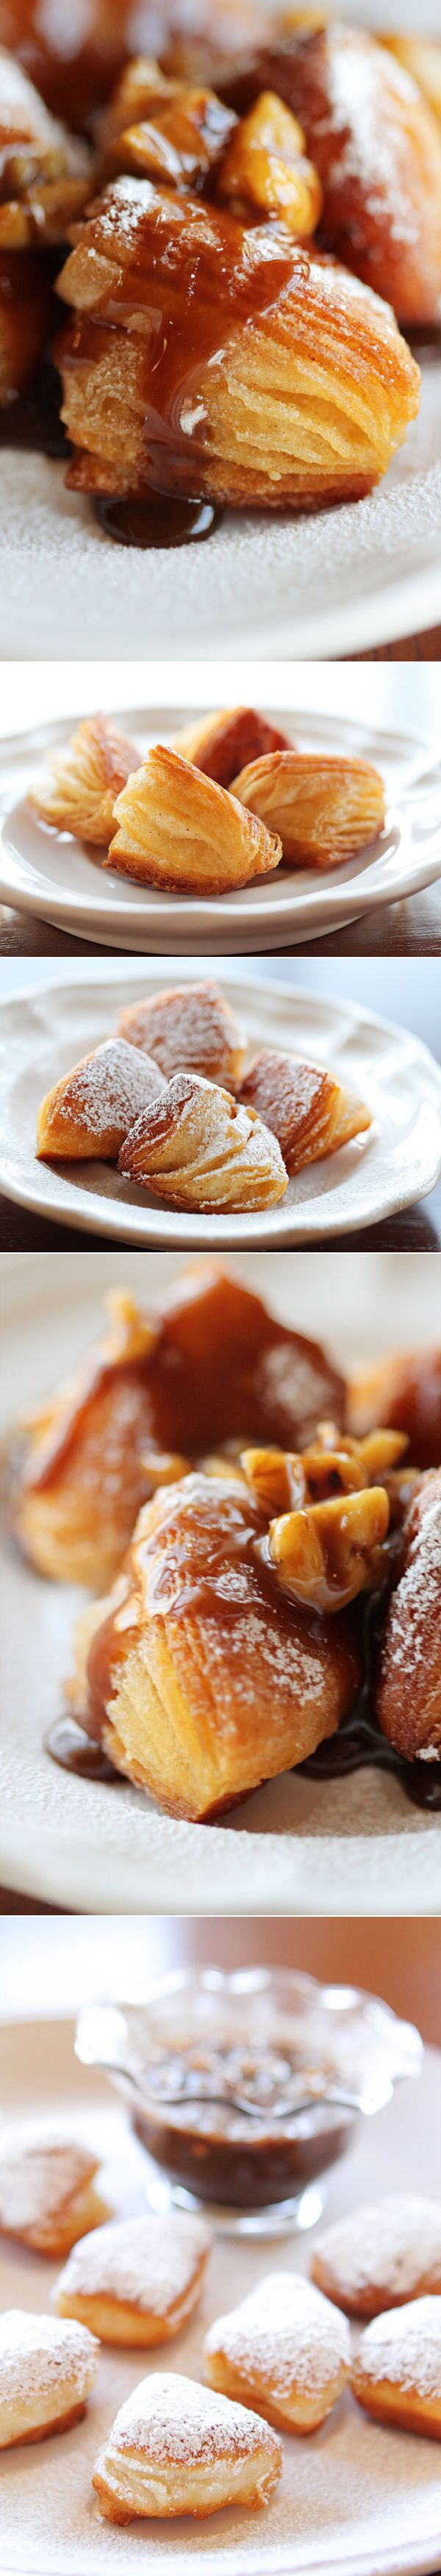 nimbus  Biscuit Beignets with Praline Sauce Recipe Beignets Biscuits and Breakfast recipes